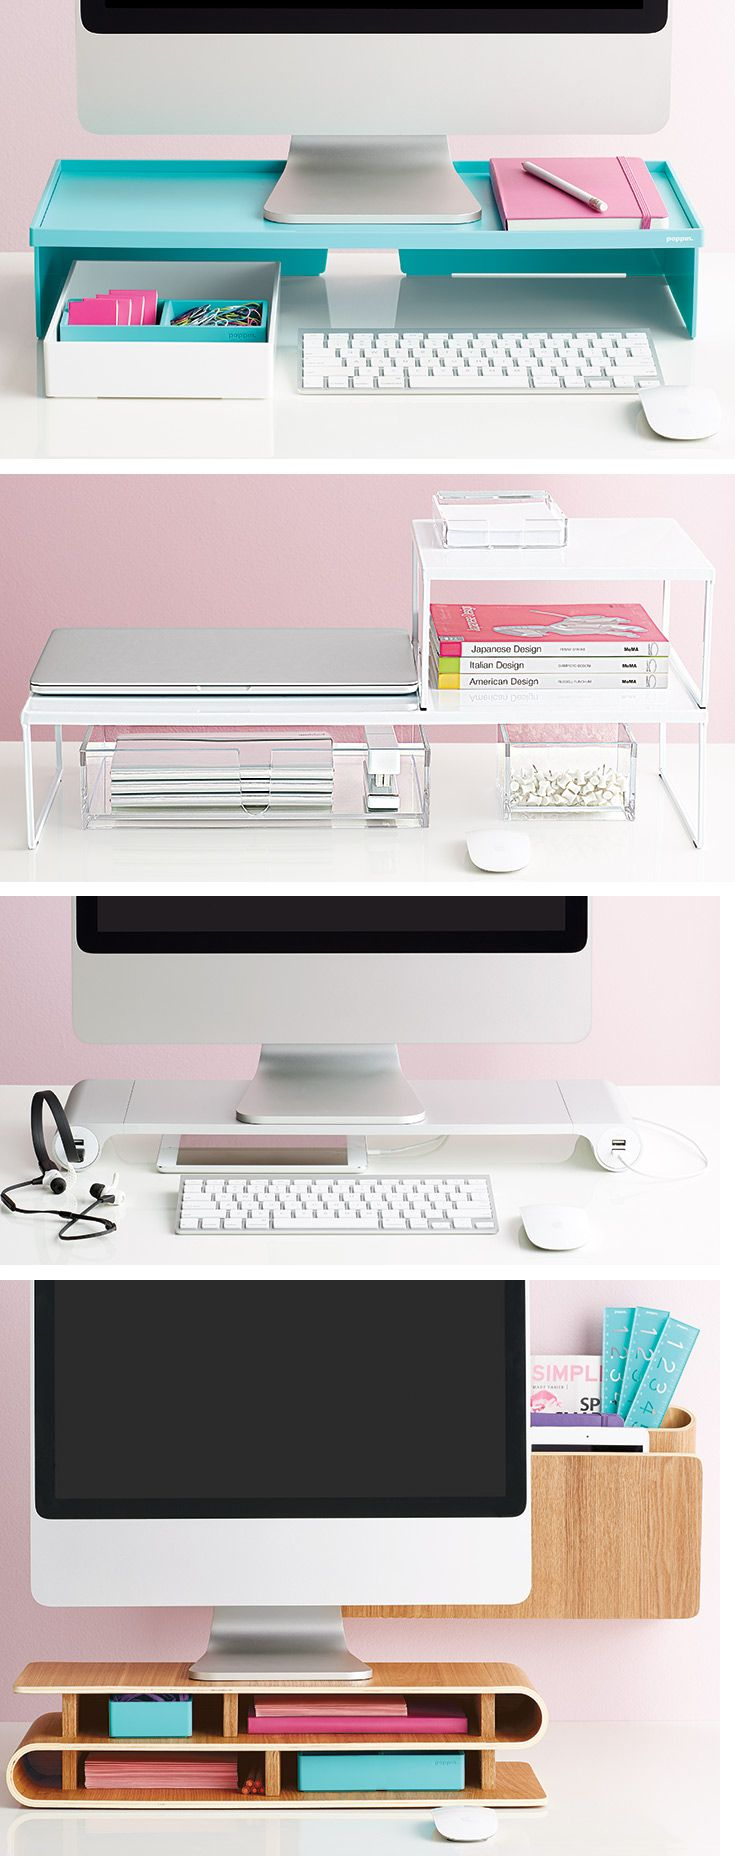 Organize Every Desk Setup With Creative Options From The Container Store!  More